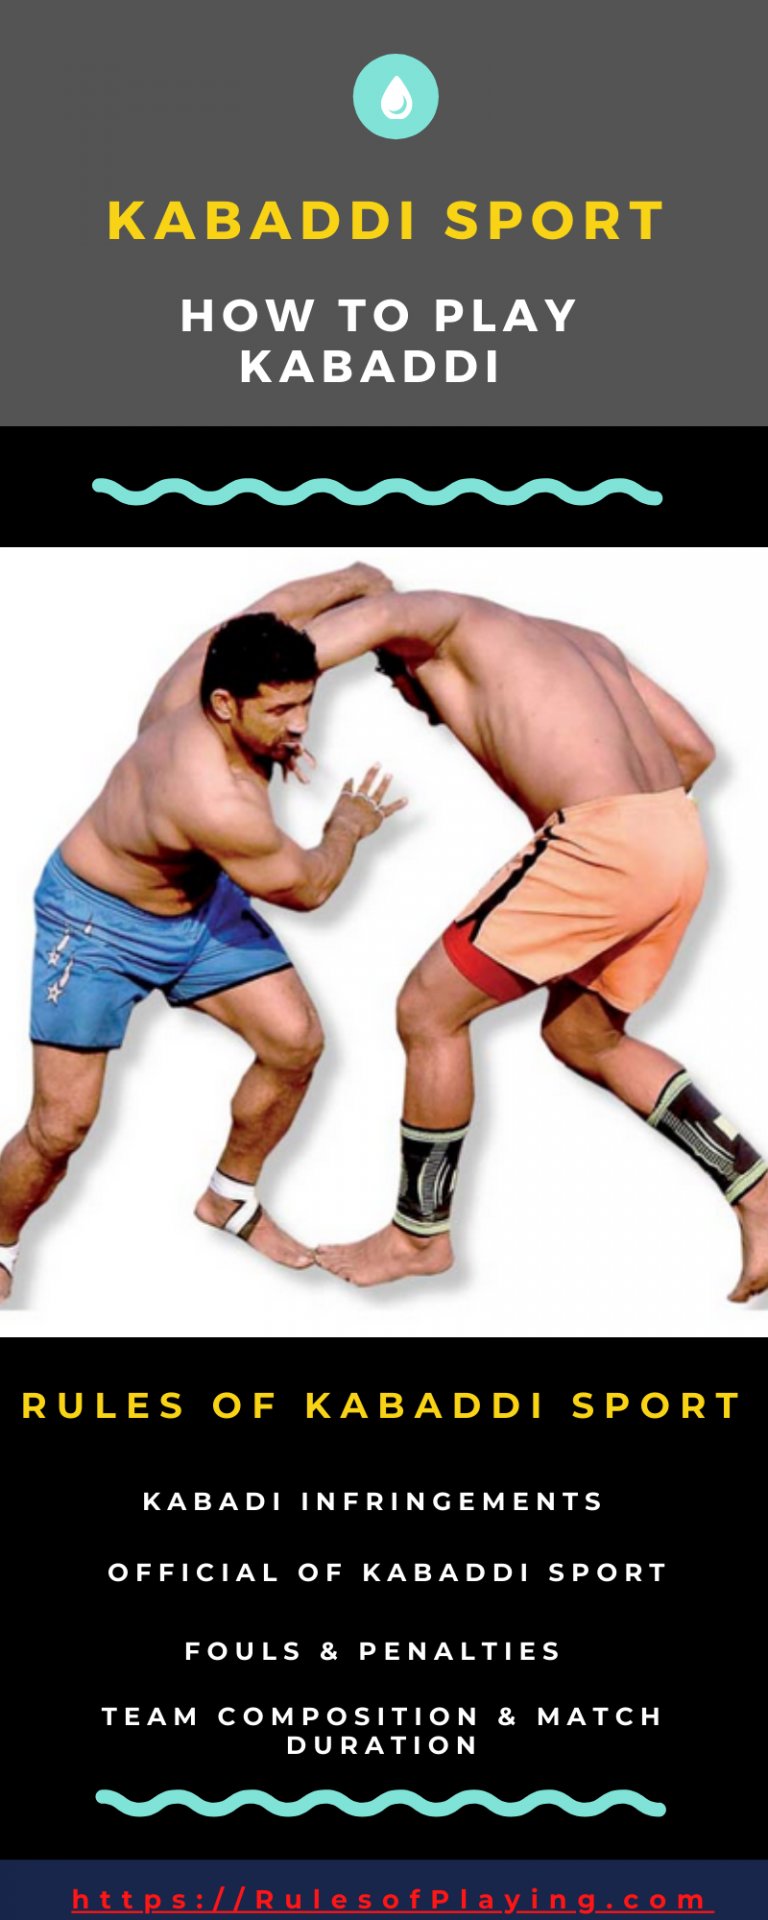 Kabaddi Rules: How to Play [ Court, Scoring, Faults ] Expert Guide 2021